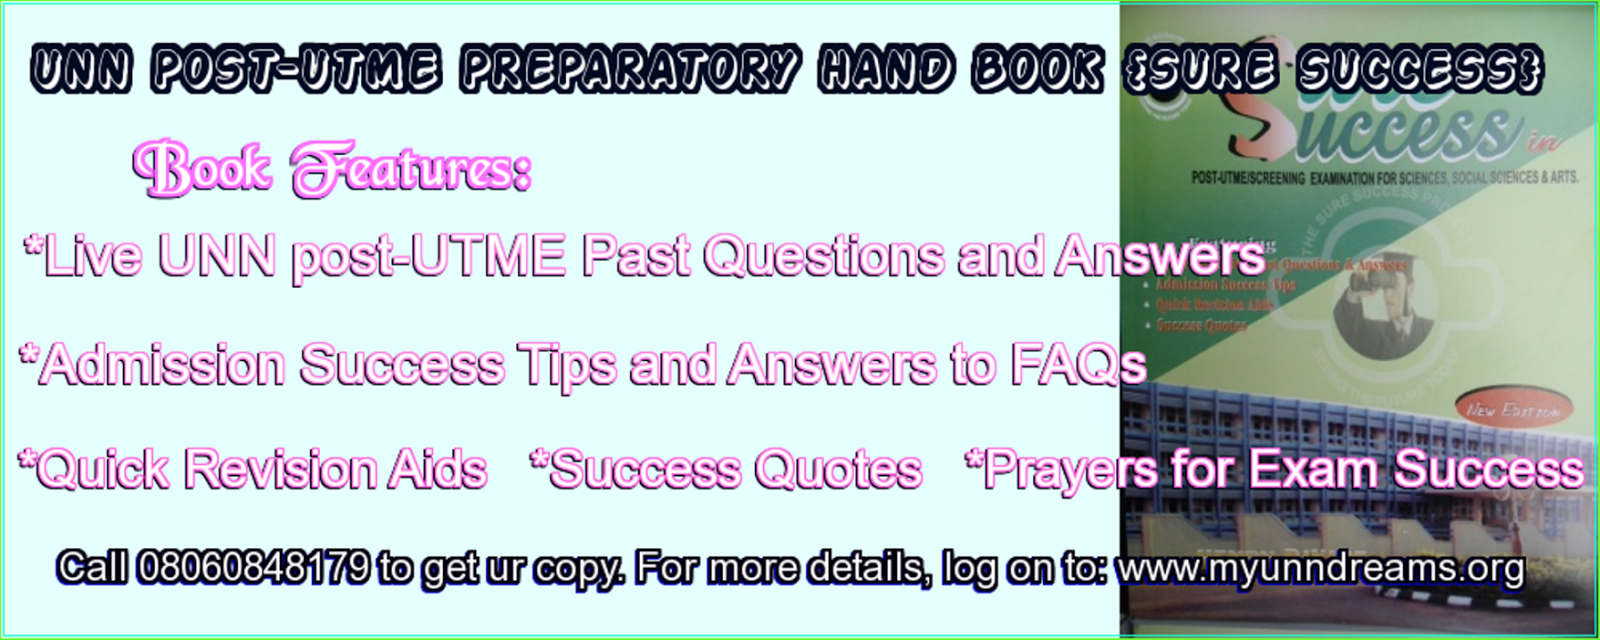 UNN POST-UTME/UME/SCREENING PAST QUESTIONS AND ANSWERS (SURE1600